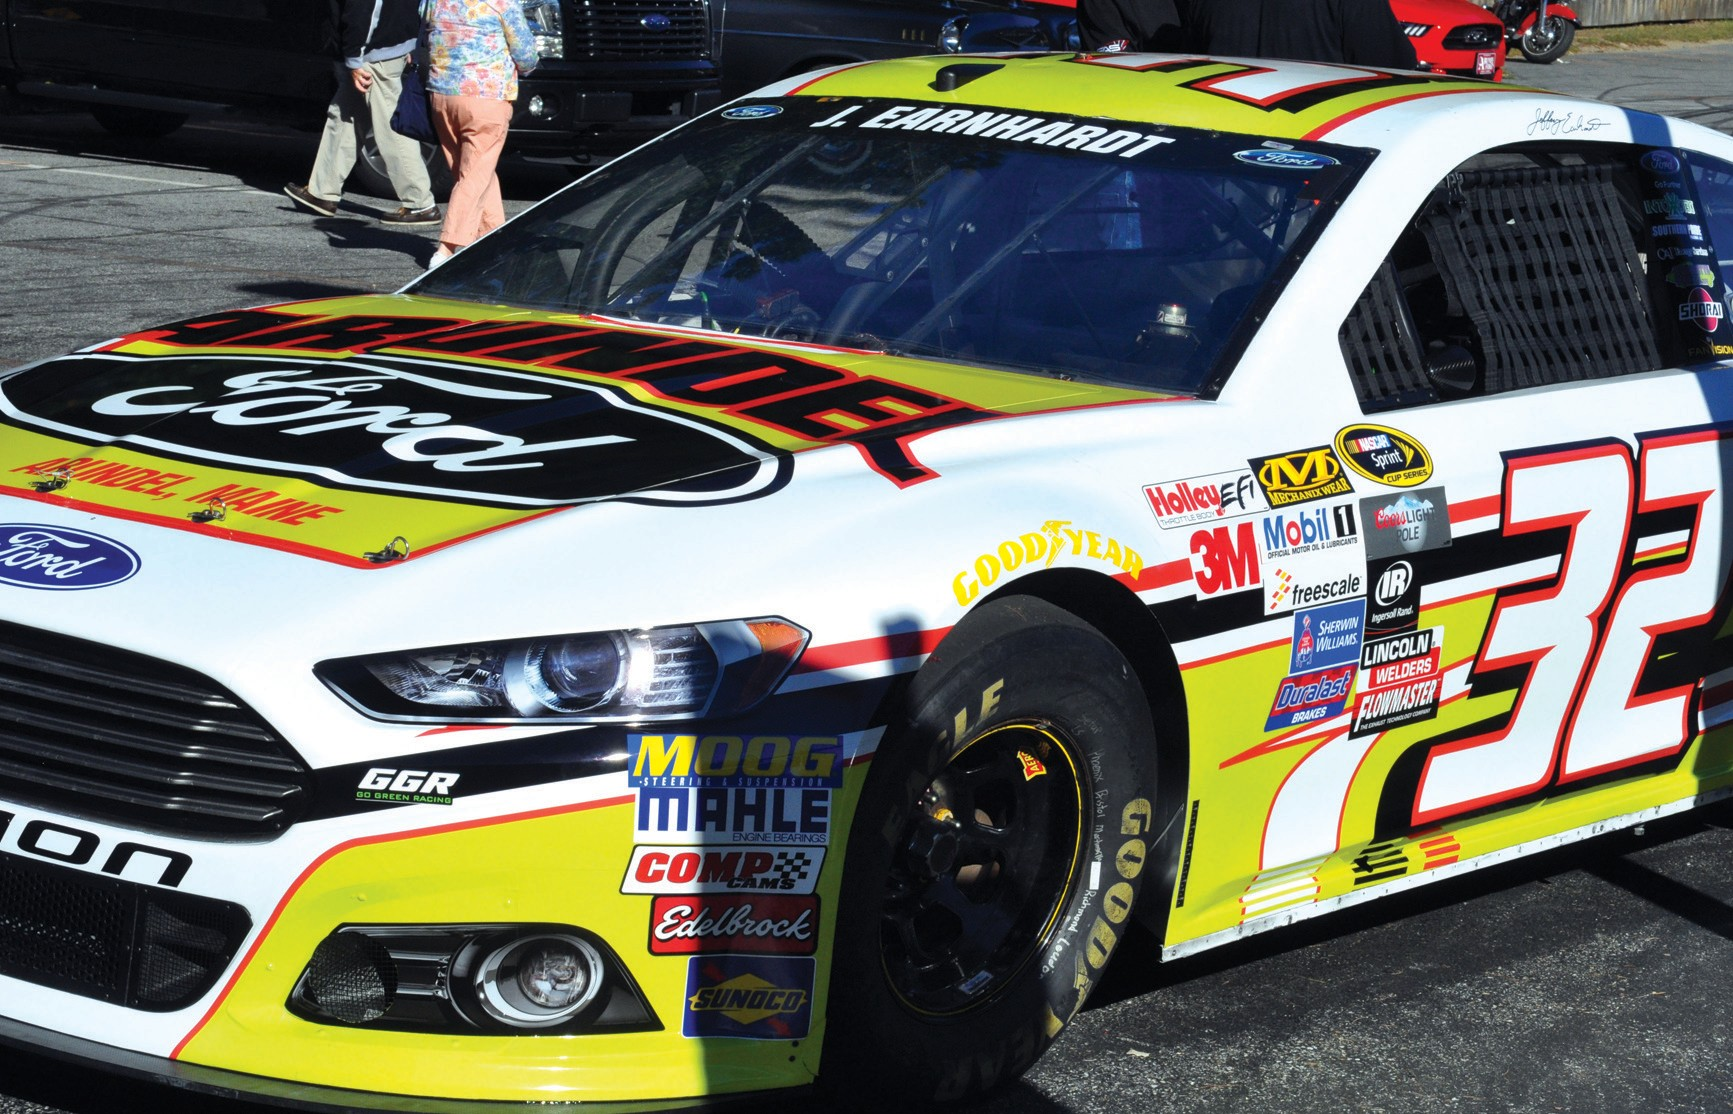 The NASCAR Sprint Cup Series car co-owned by Old Orchard Beach native Archie St. Hilaire and driven by Jeffrey Earnhardt is displayed outside Bentley's Saloon in Arundel during a meet-and-greet session Wednesday.